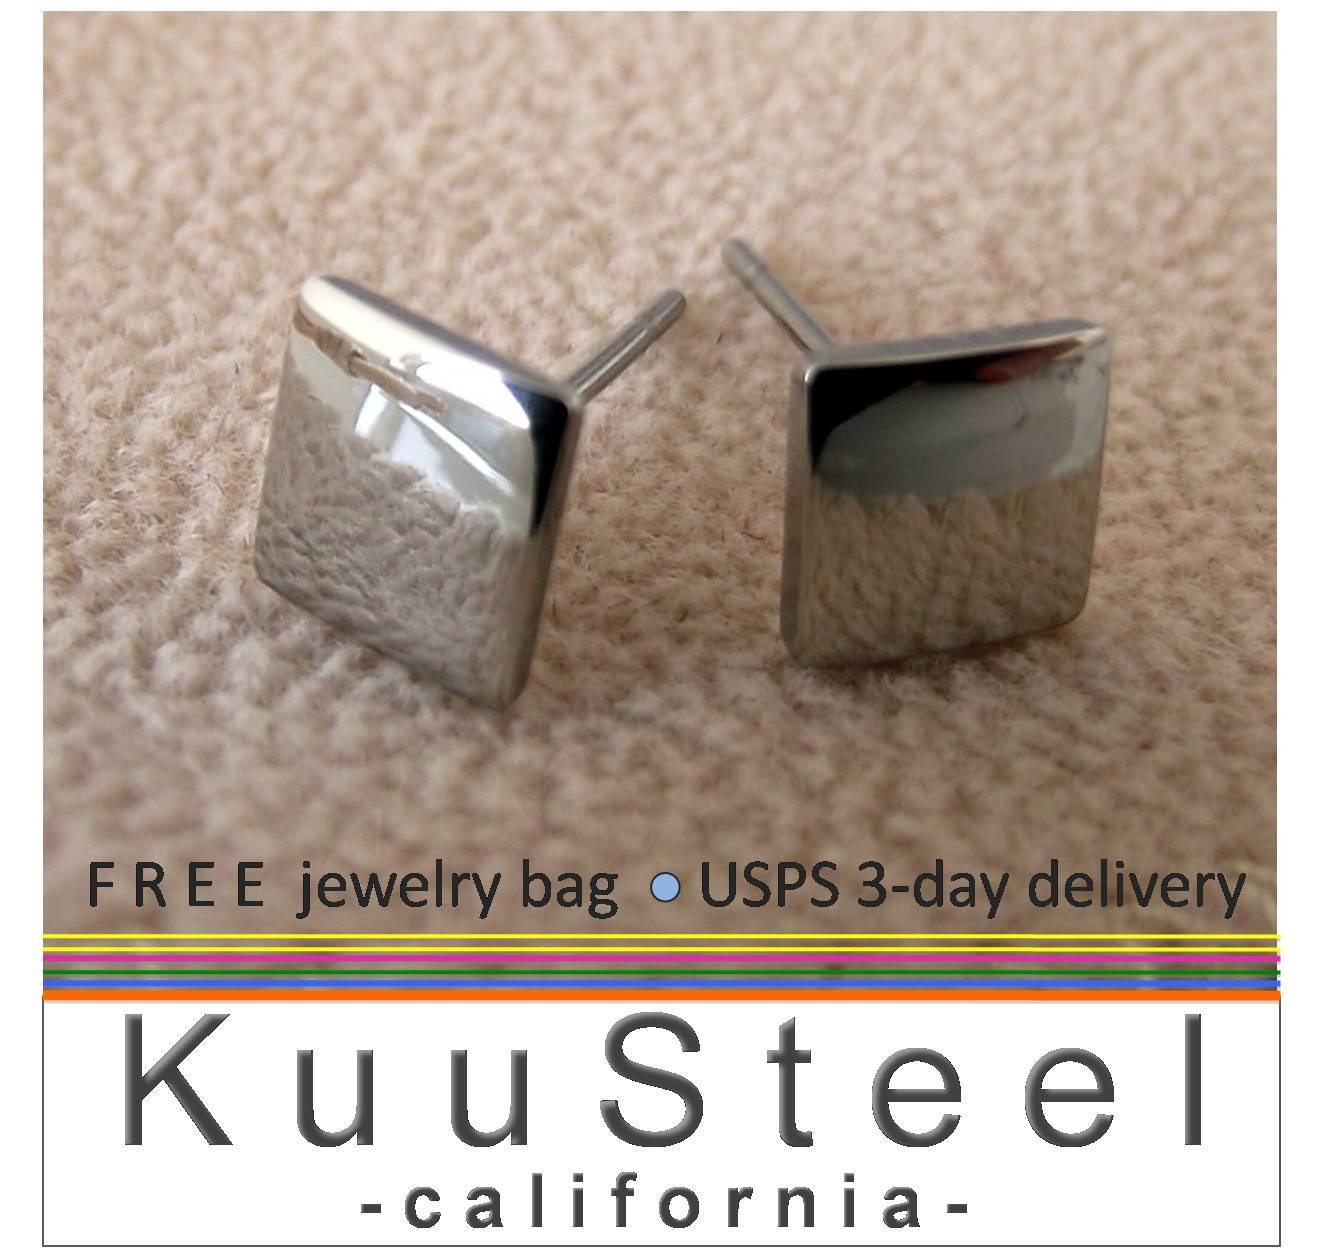 Men's stud earrings in a flat square design made from stainless steel, 420G